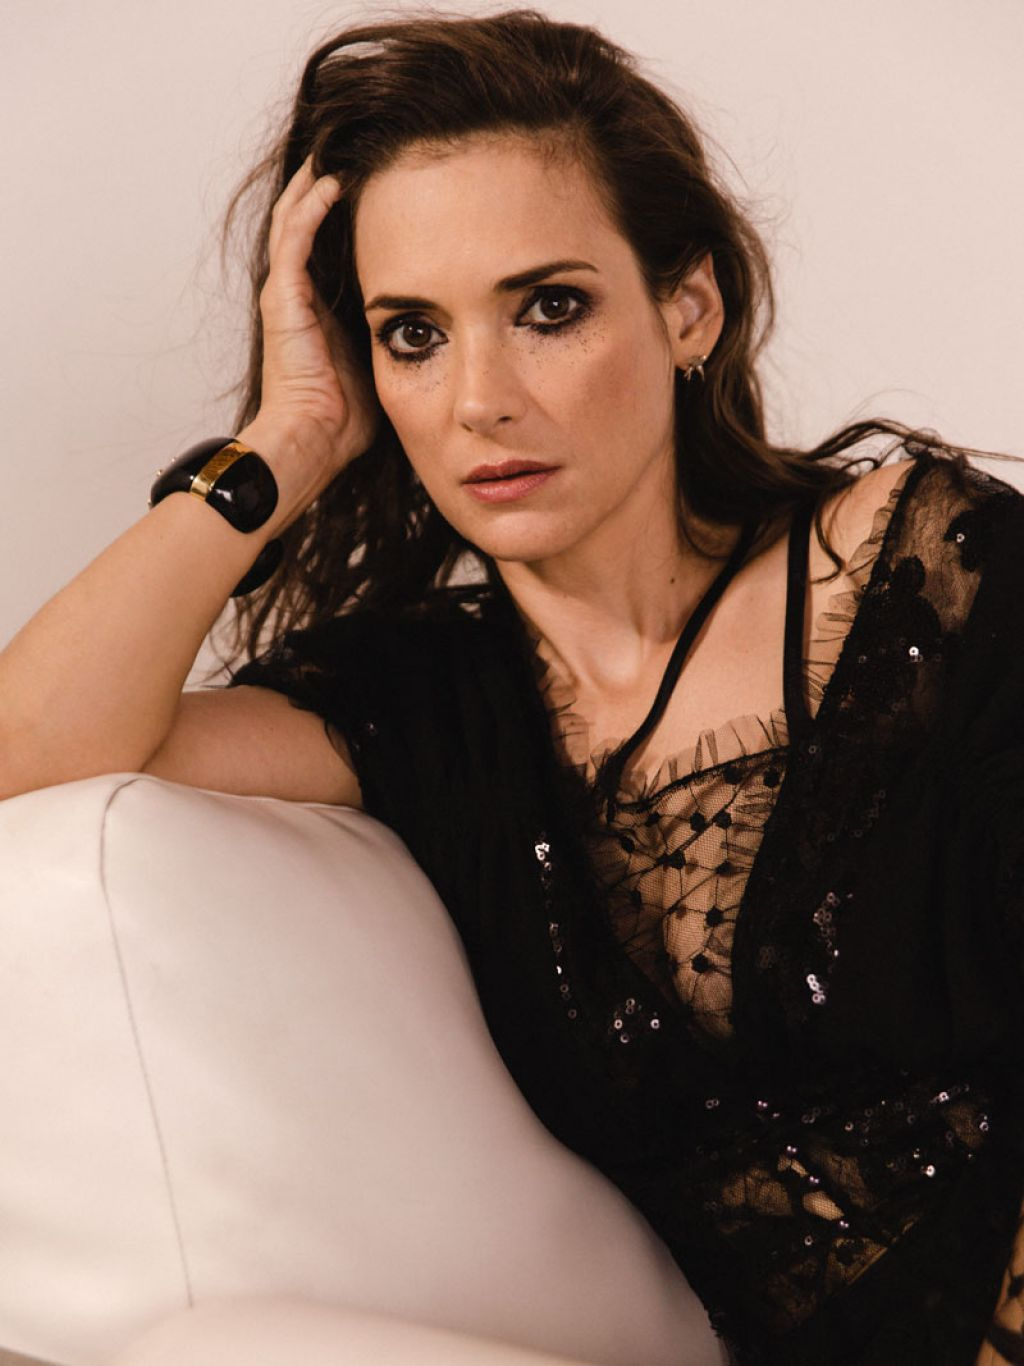 winona ryder - photo #14